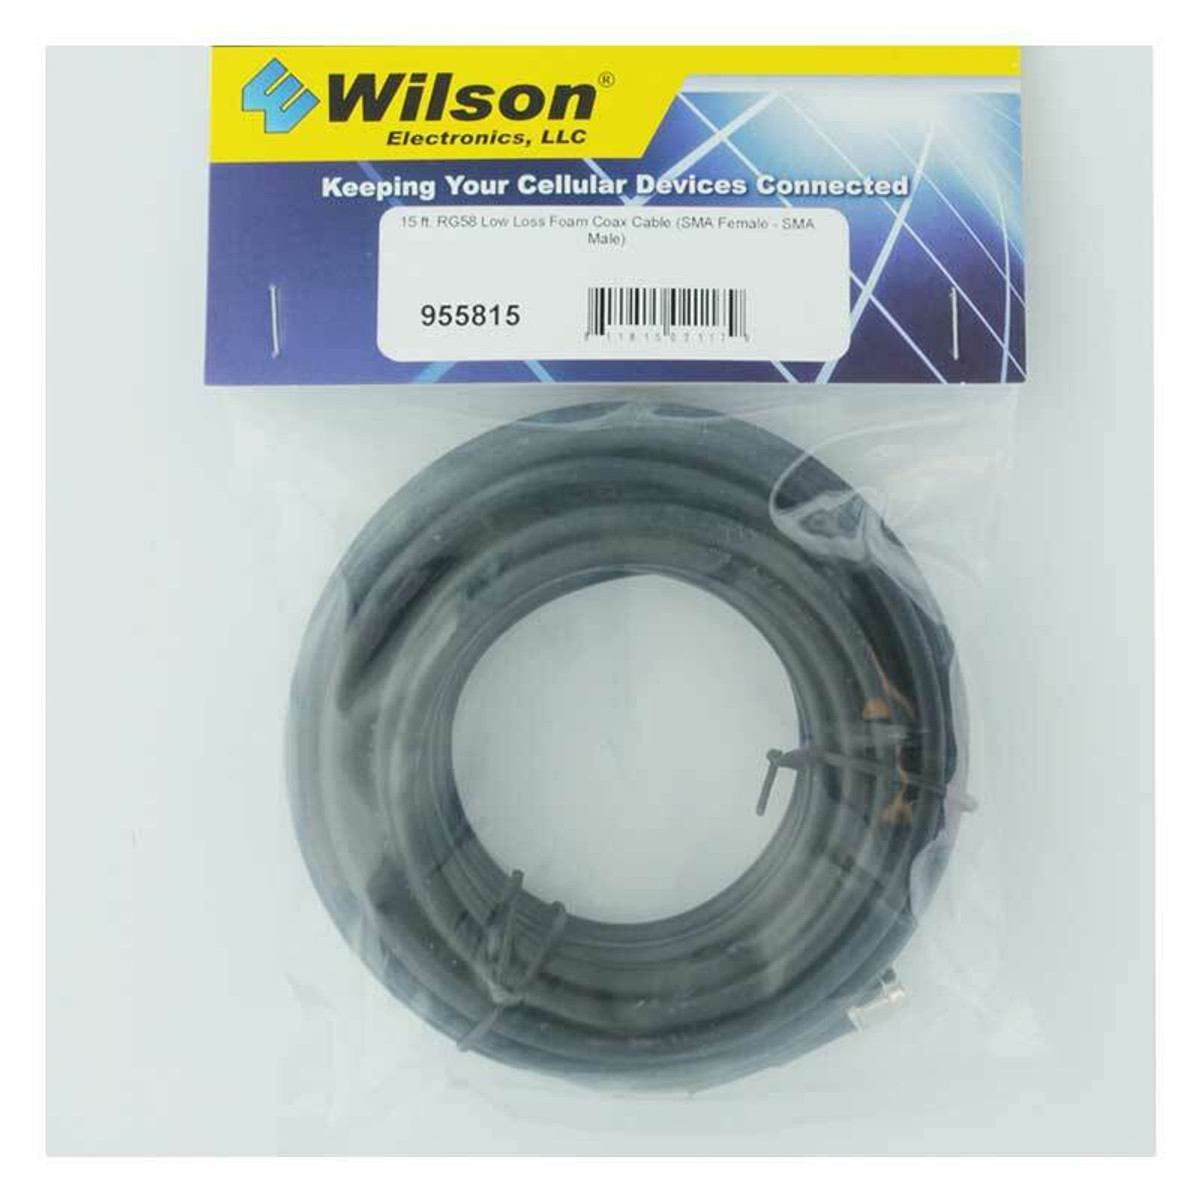 weBoost (Wilson) 955815 RG58 Extension SMA Female to SMA Male   15 ft Black Cable